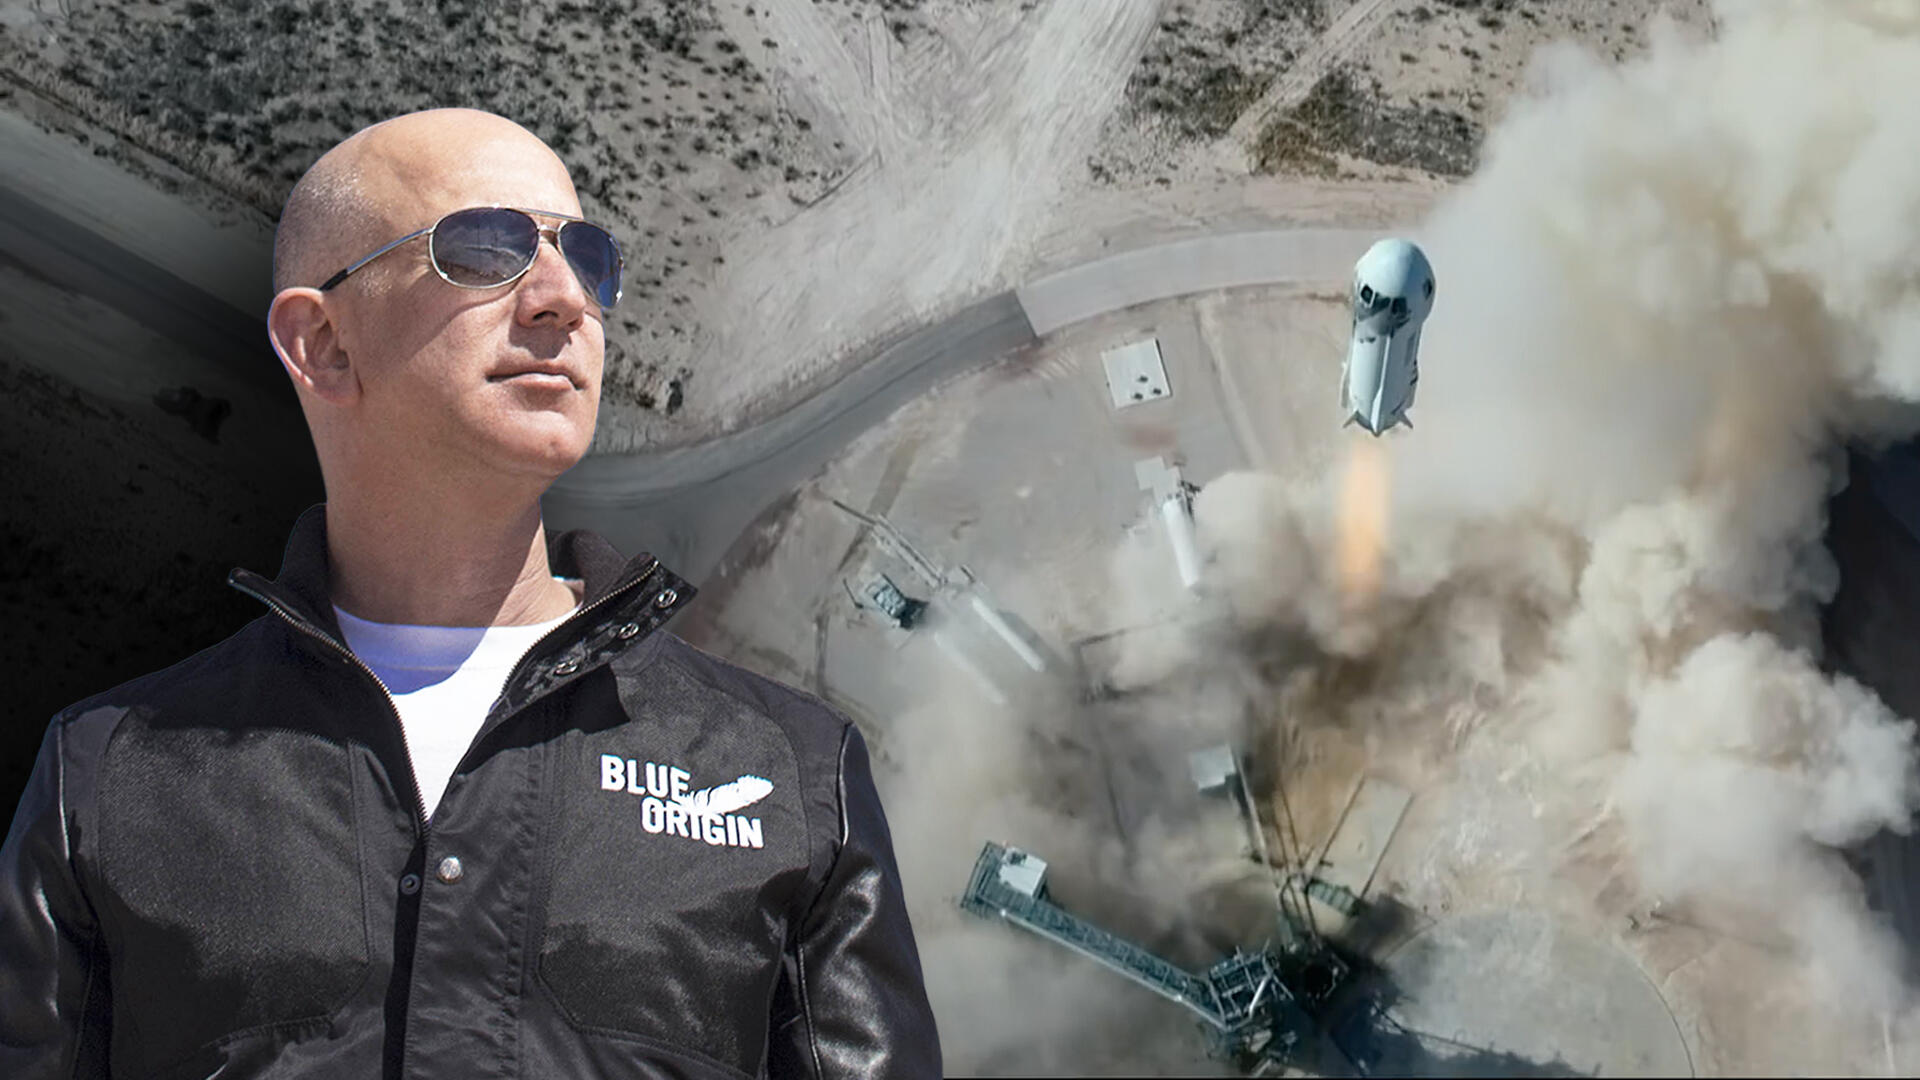 Video: Jeff Bezos becomes an astronaut, Amazon to stop COVID testing warehouse staff